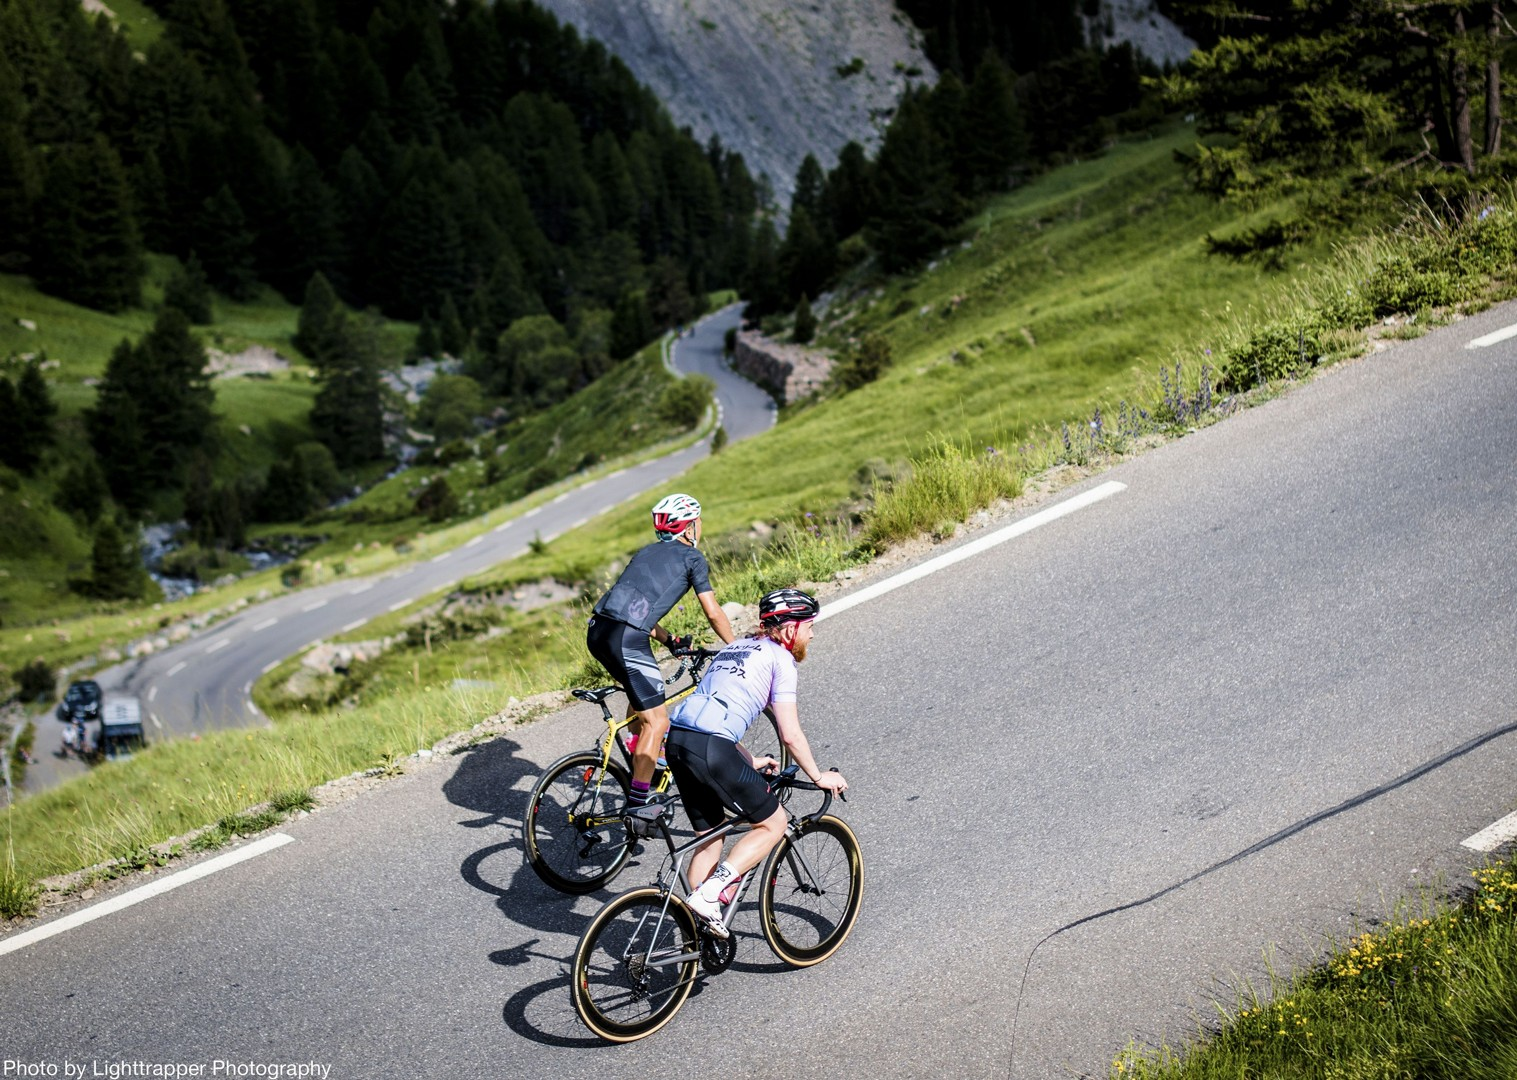 high-ascent-climbs-france-raid-alpine-road-cycling-holiday.jpg - France - Raid Alpine - Guided Road Cycling Holiday - Road Cycling